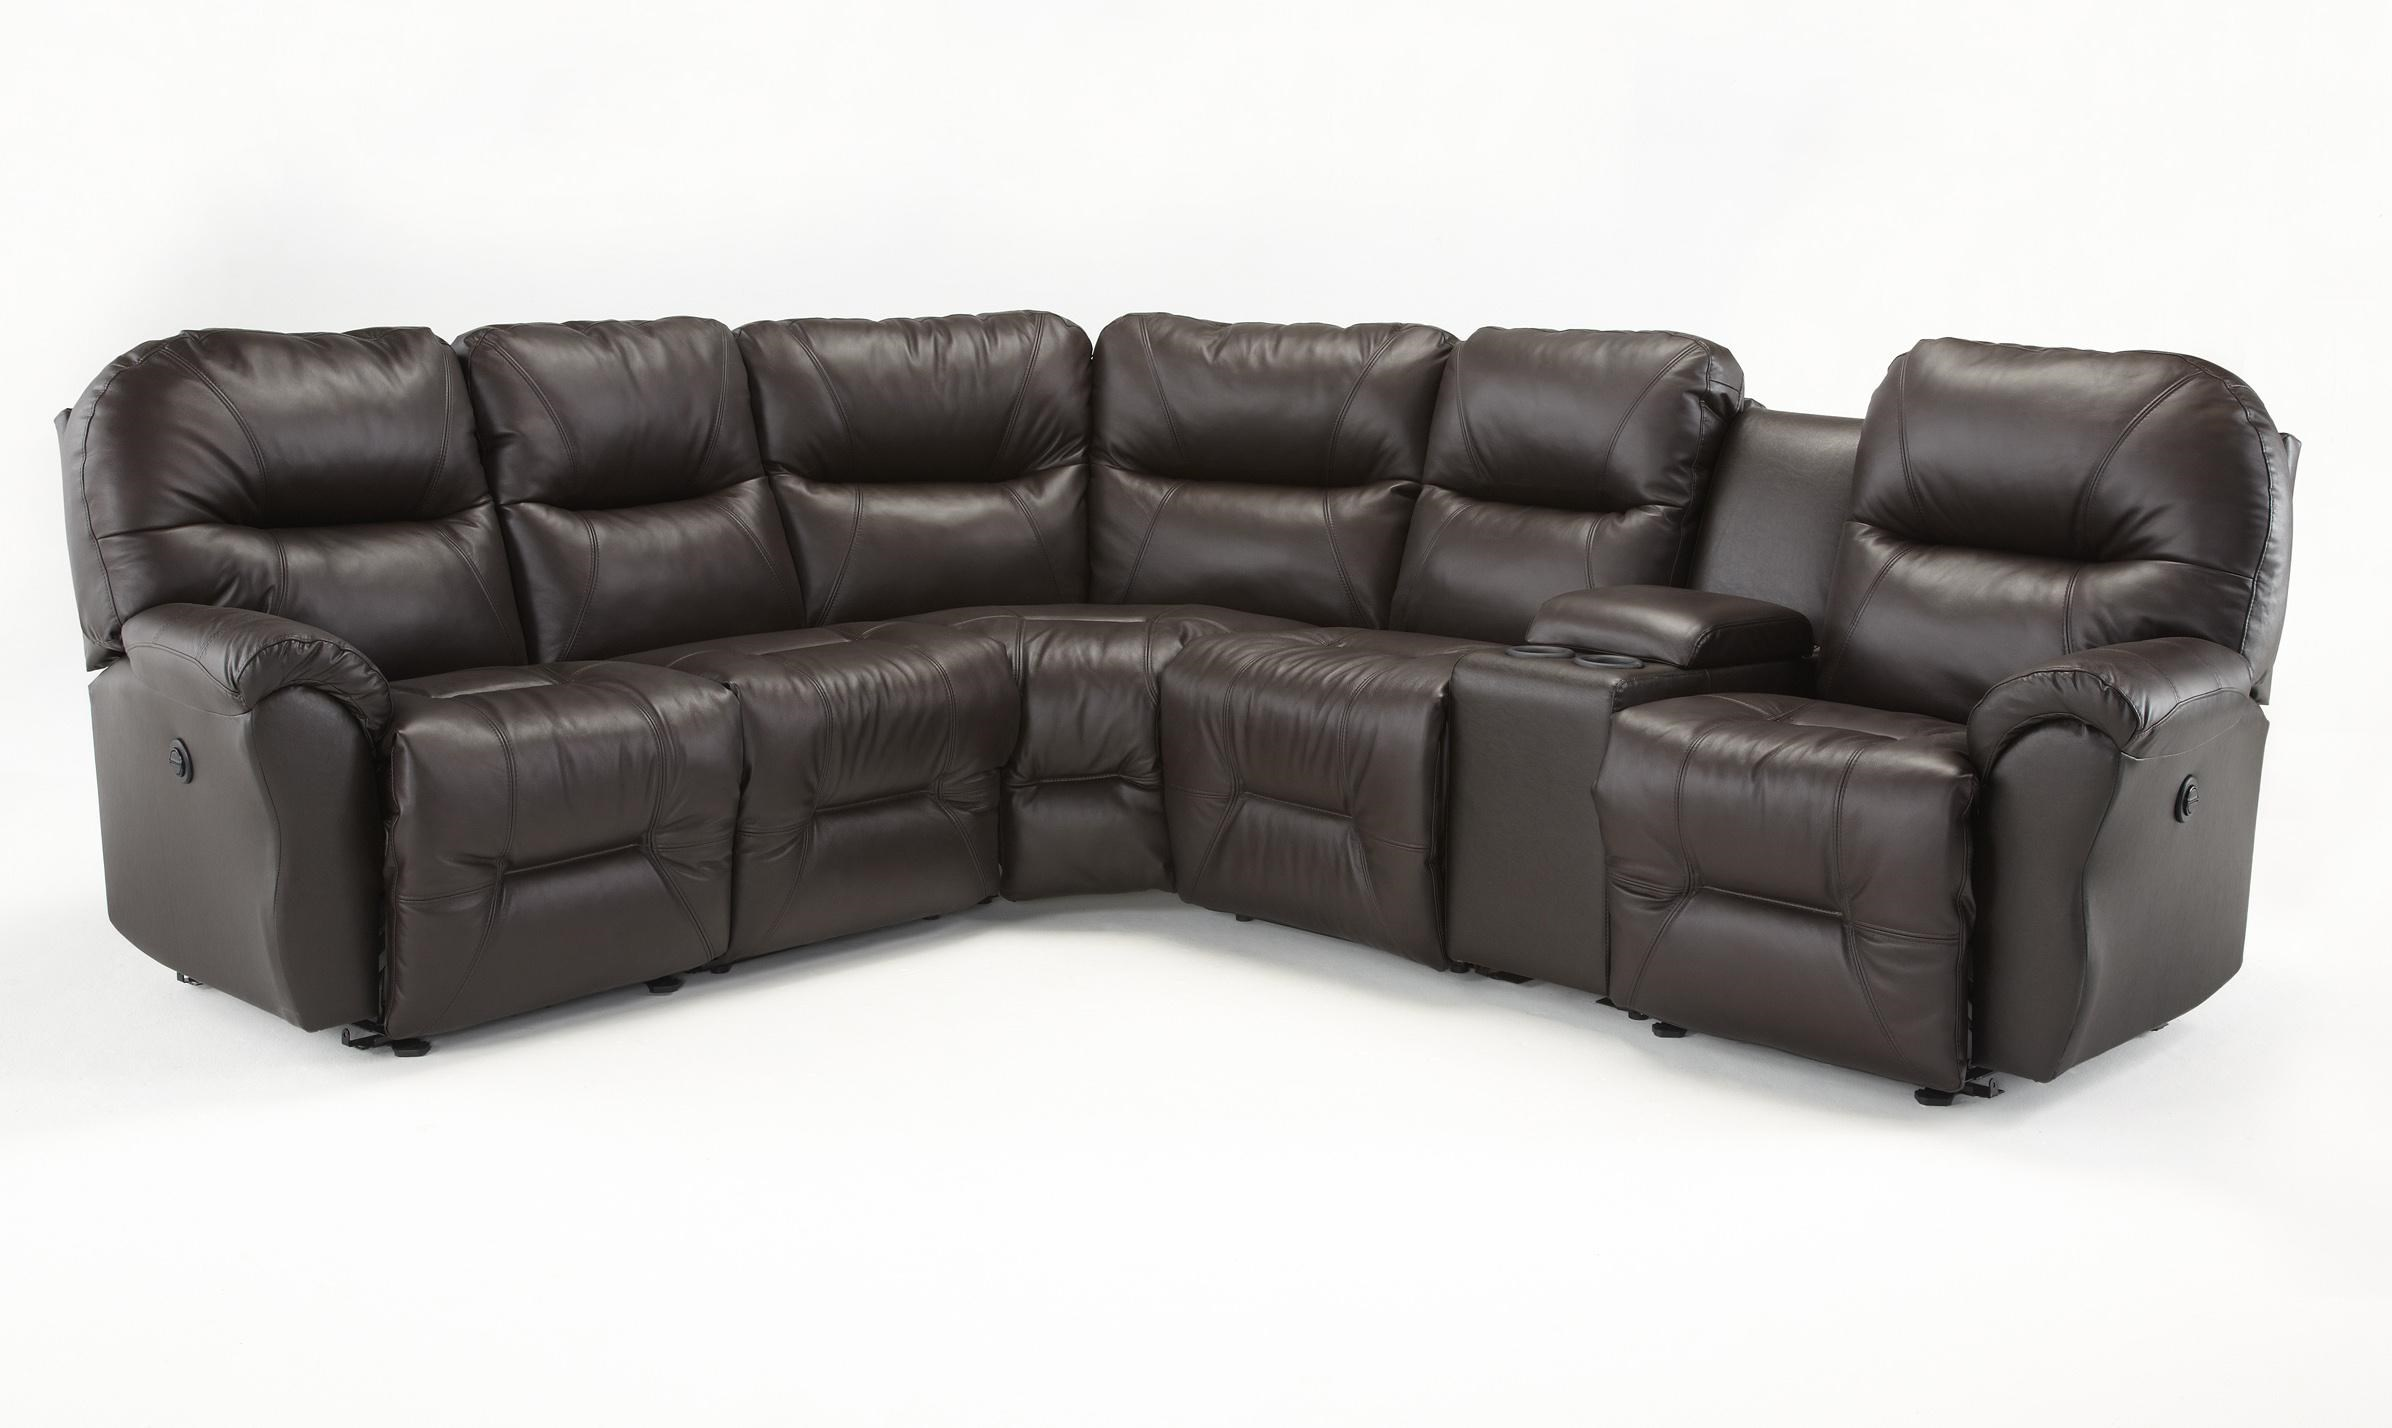 bodie 6 pc reclining sectional sofa